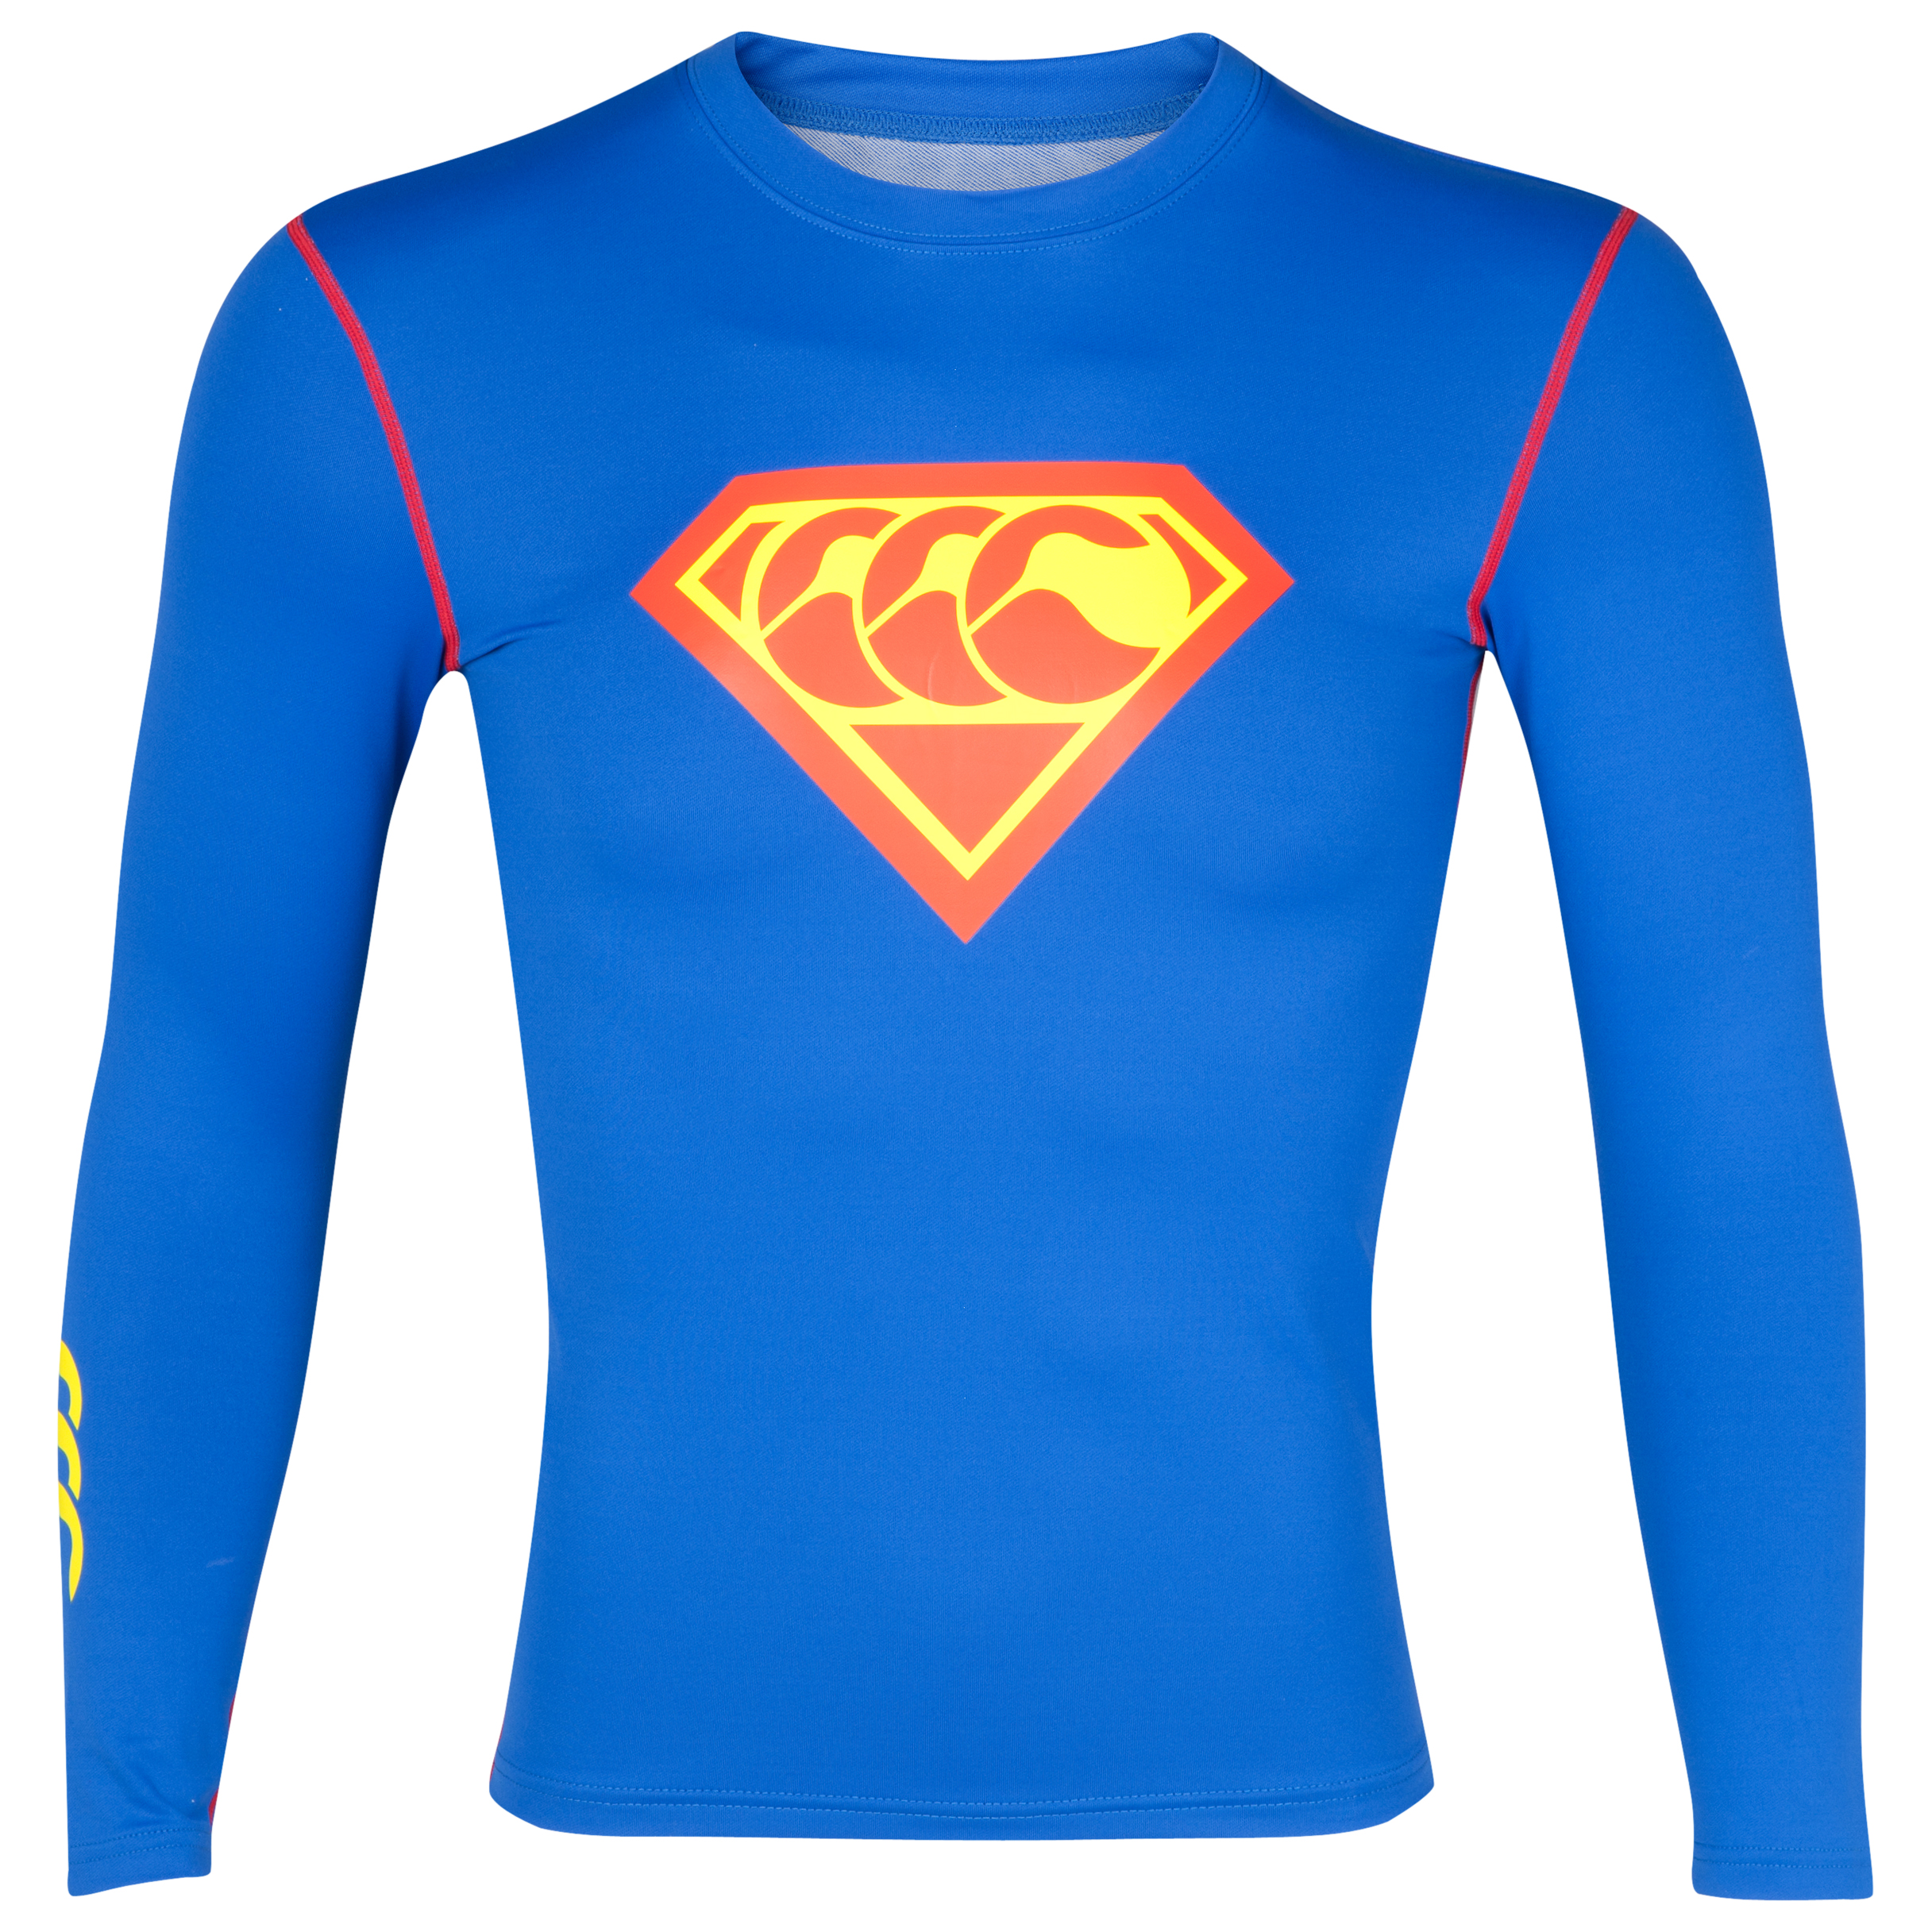 Canterbury Super Cold Baselayer Top - Long Sleeve - Olympian Blue